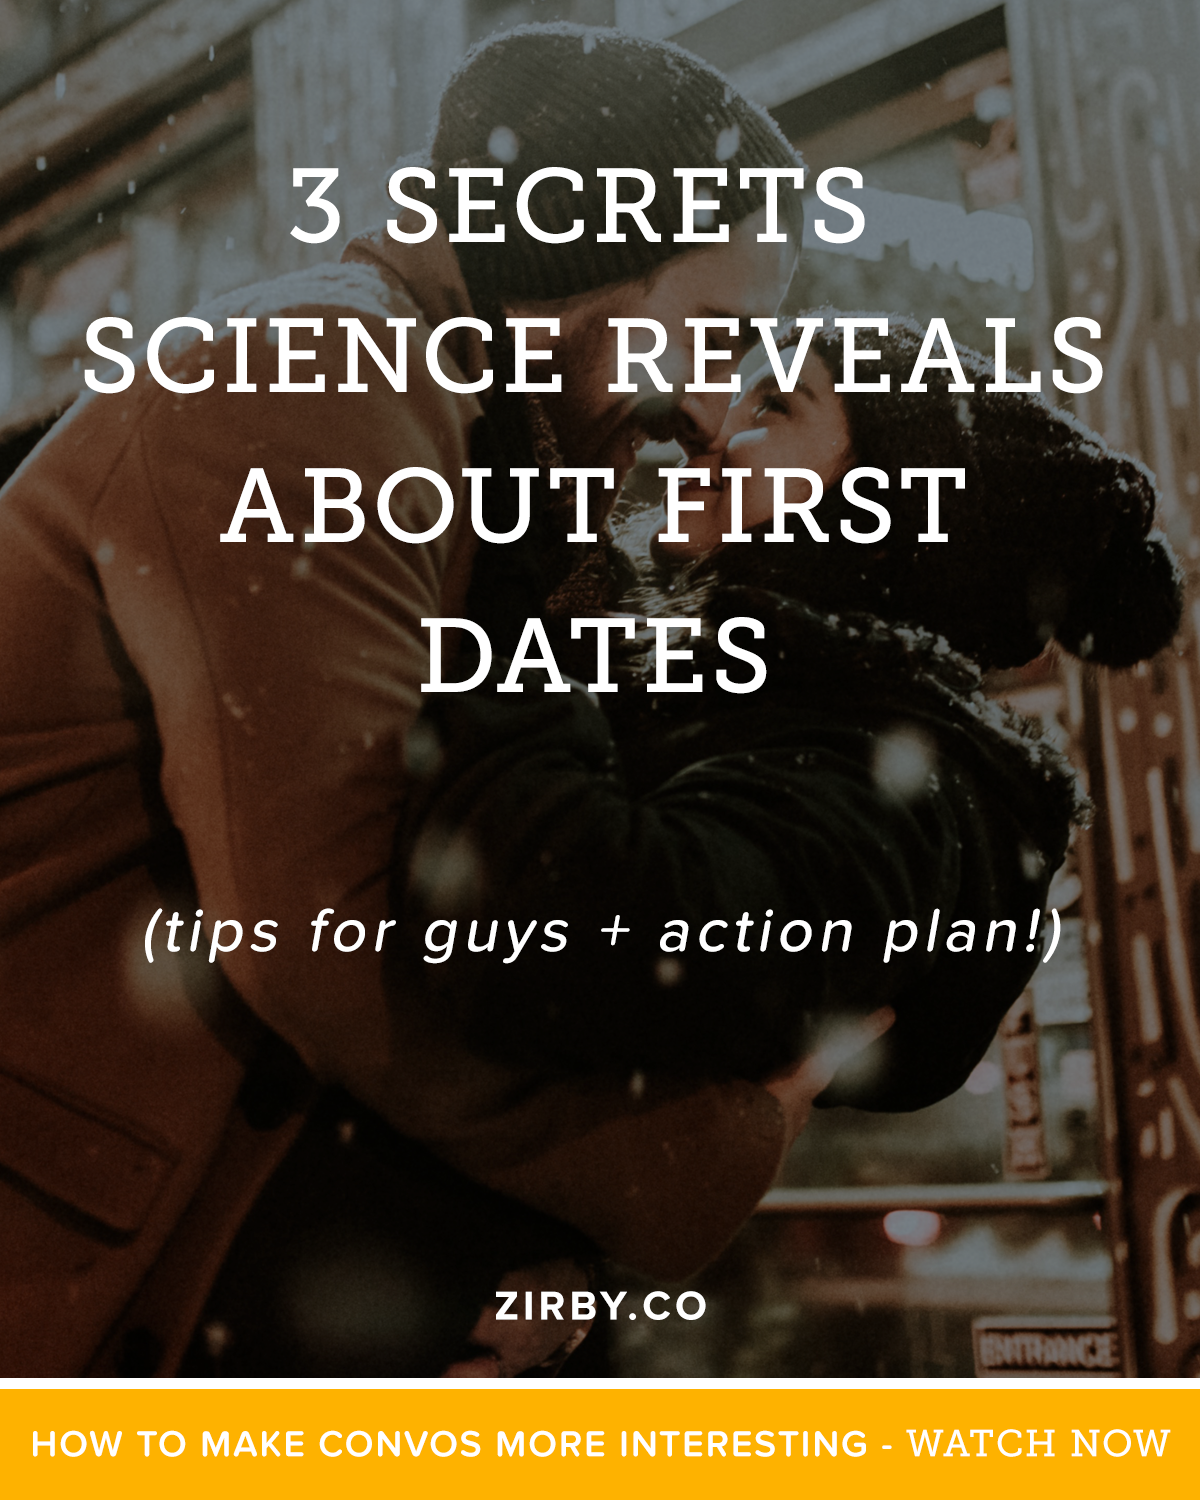 How to get a First Date on Tinder (3 Science-Based Secrets)